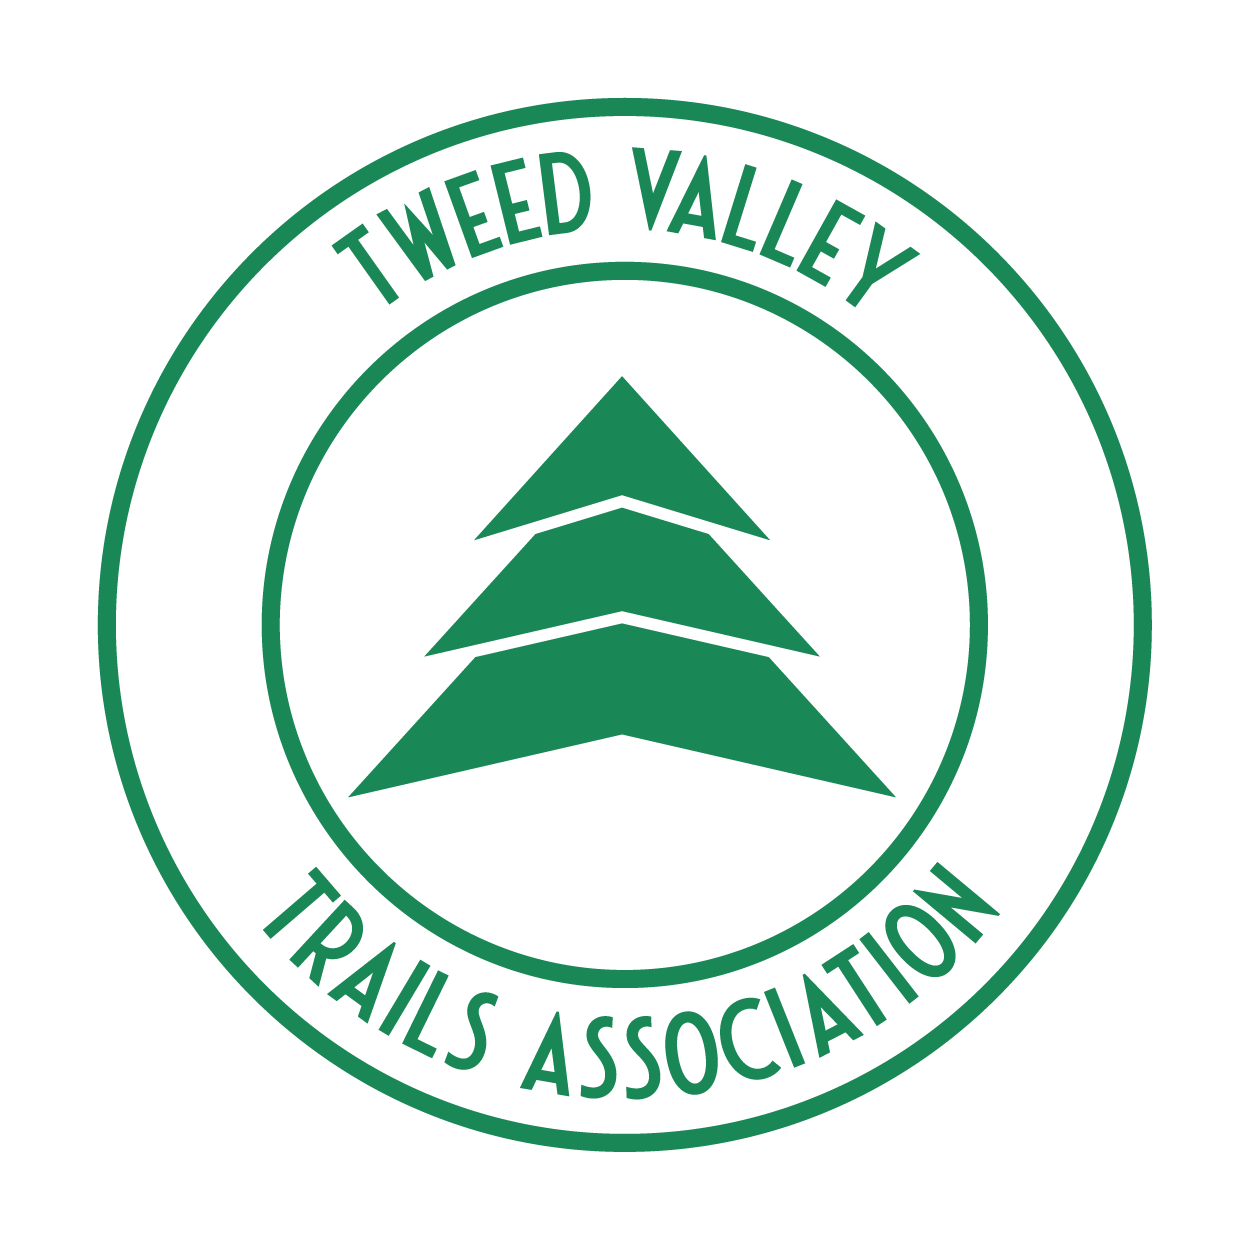 Tweed Valley Trails Association